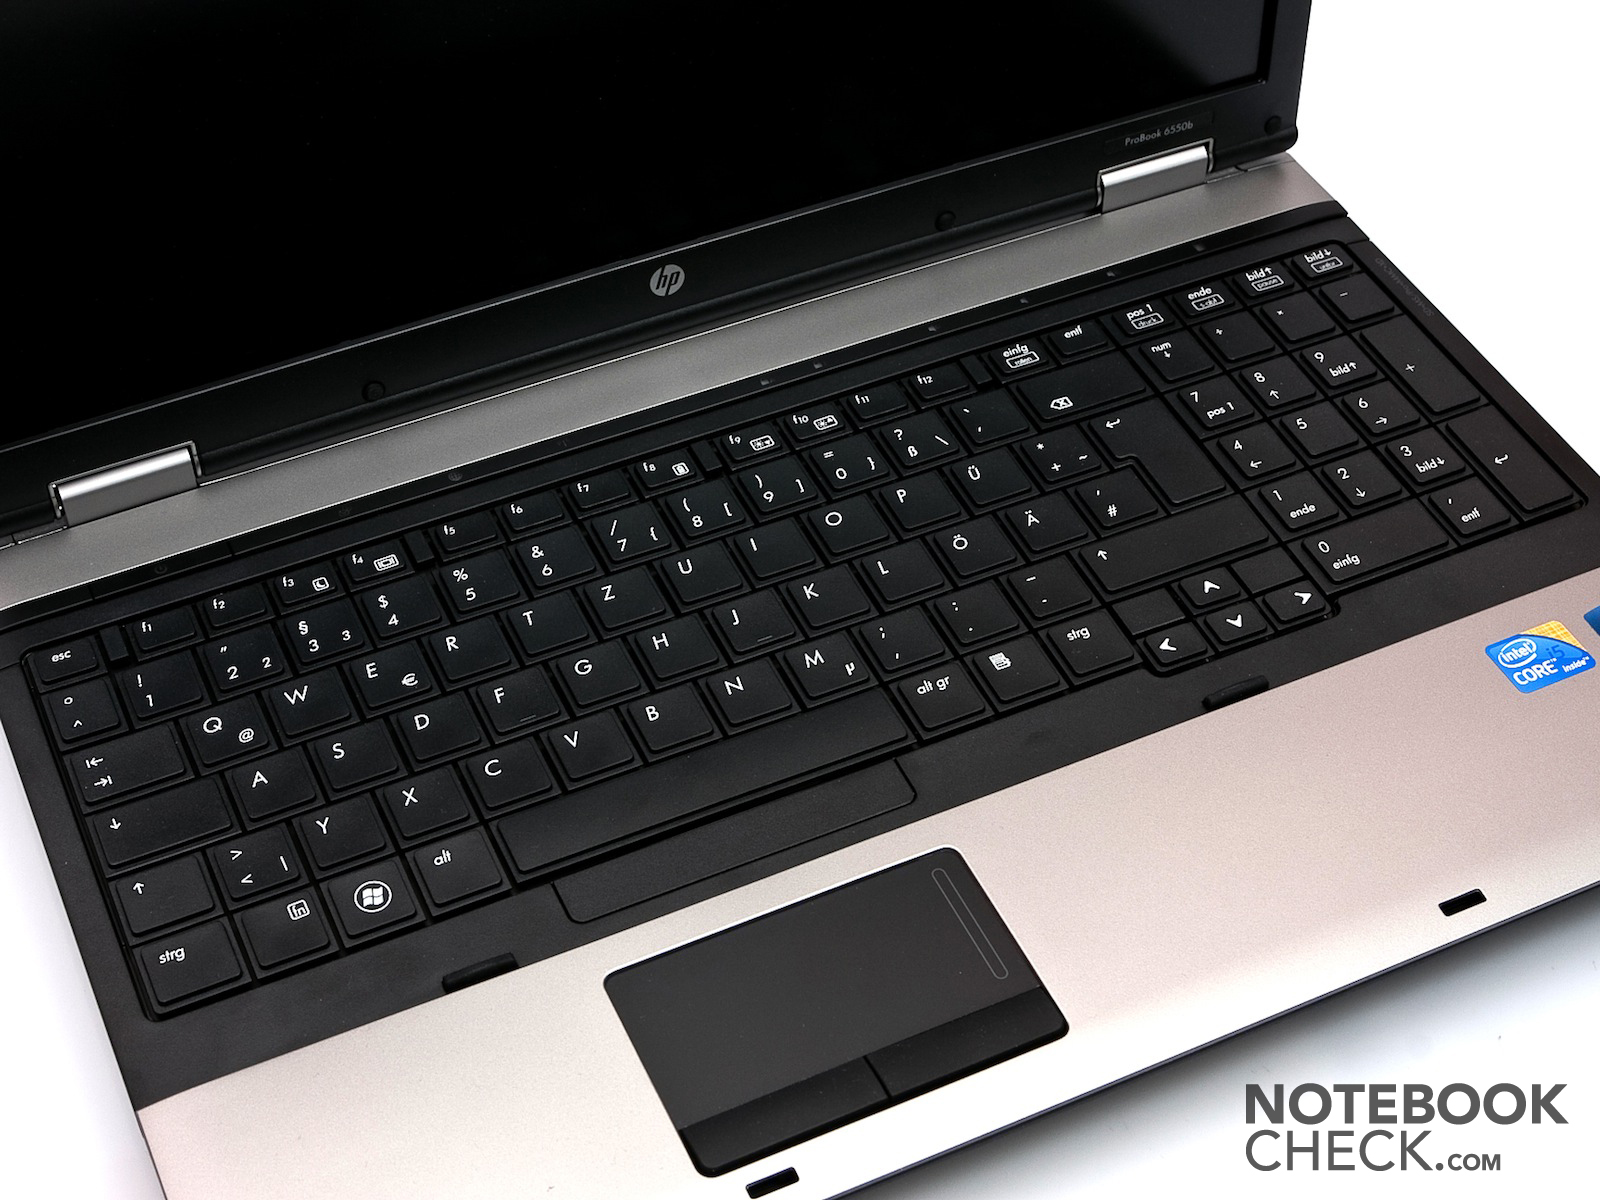 Bluetooth Lautsprecher Groß Test Hp Probook 6550b Notebook - Notebookcheck.com Tests